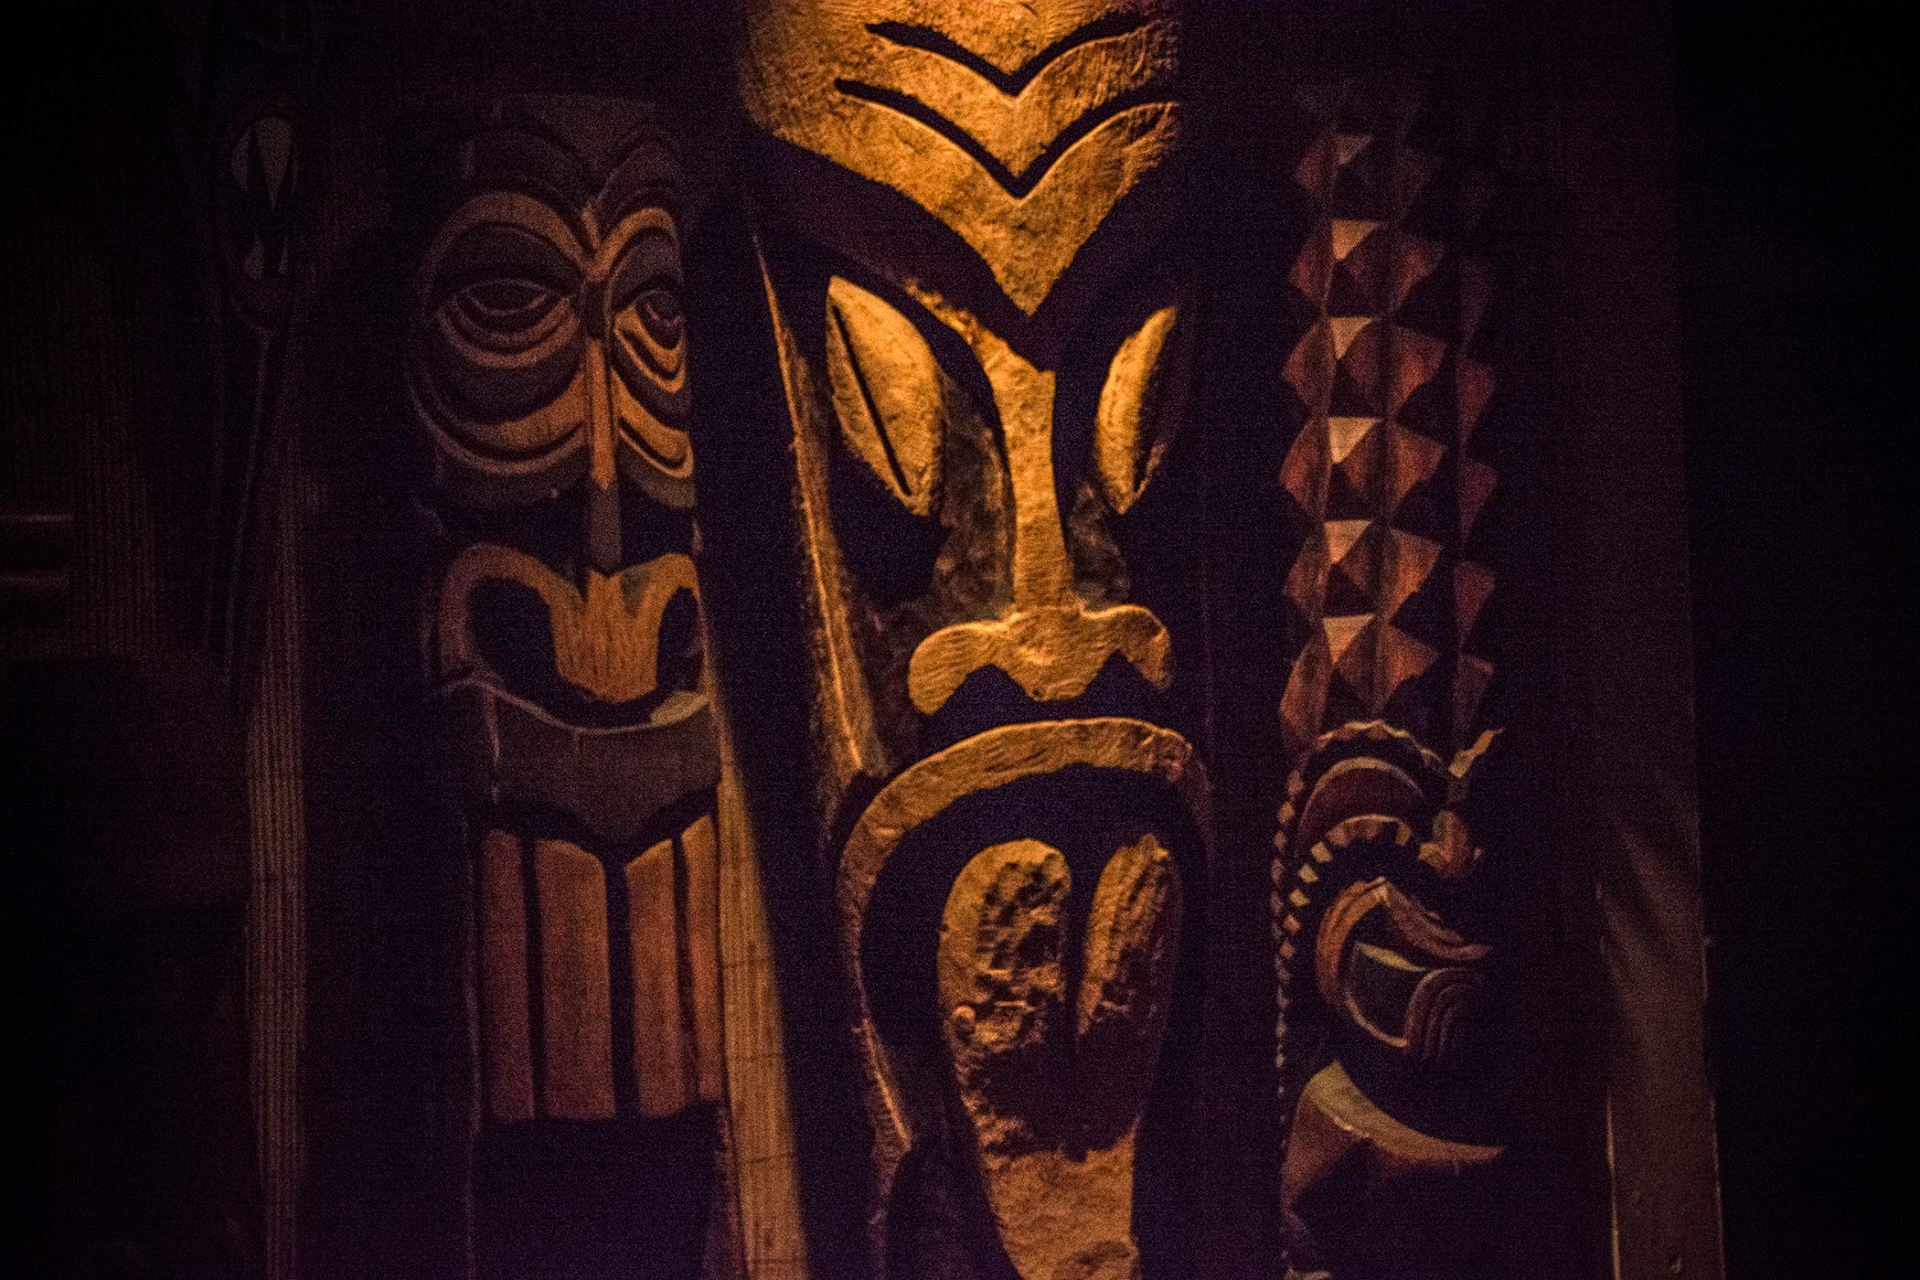 Tikis at Purple Orchid, photo by Fuzzy